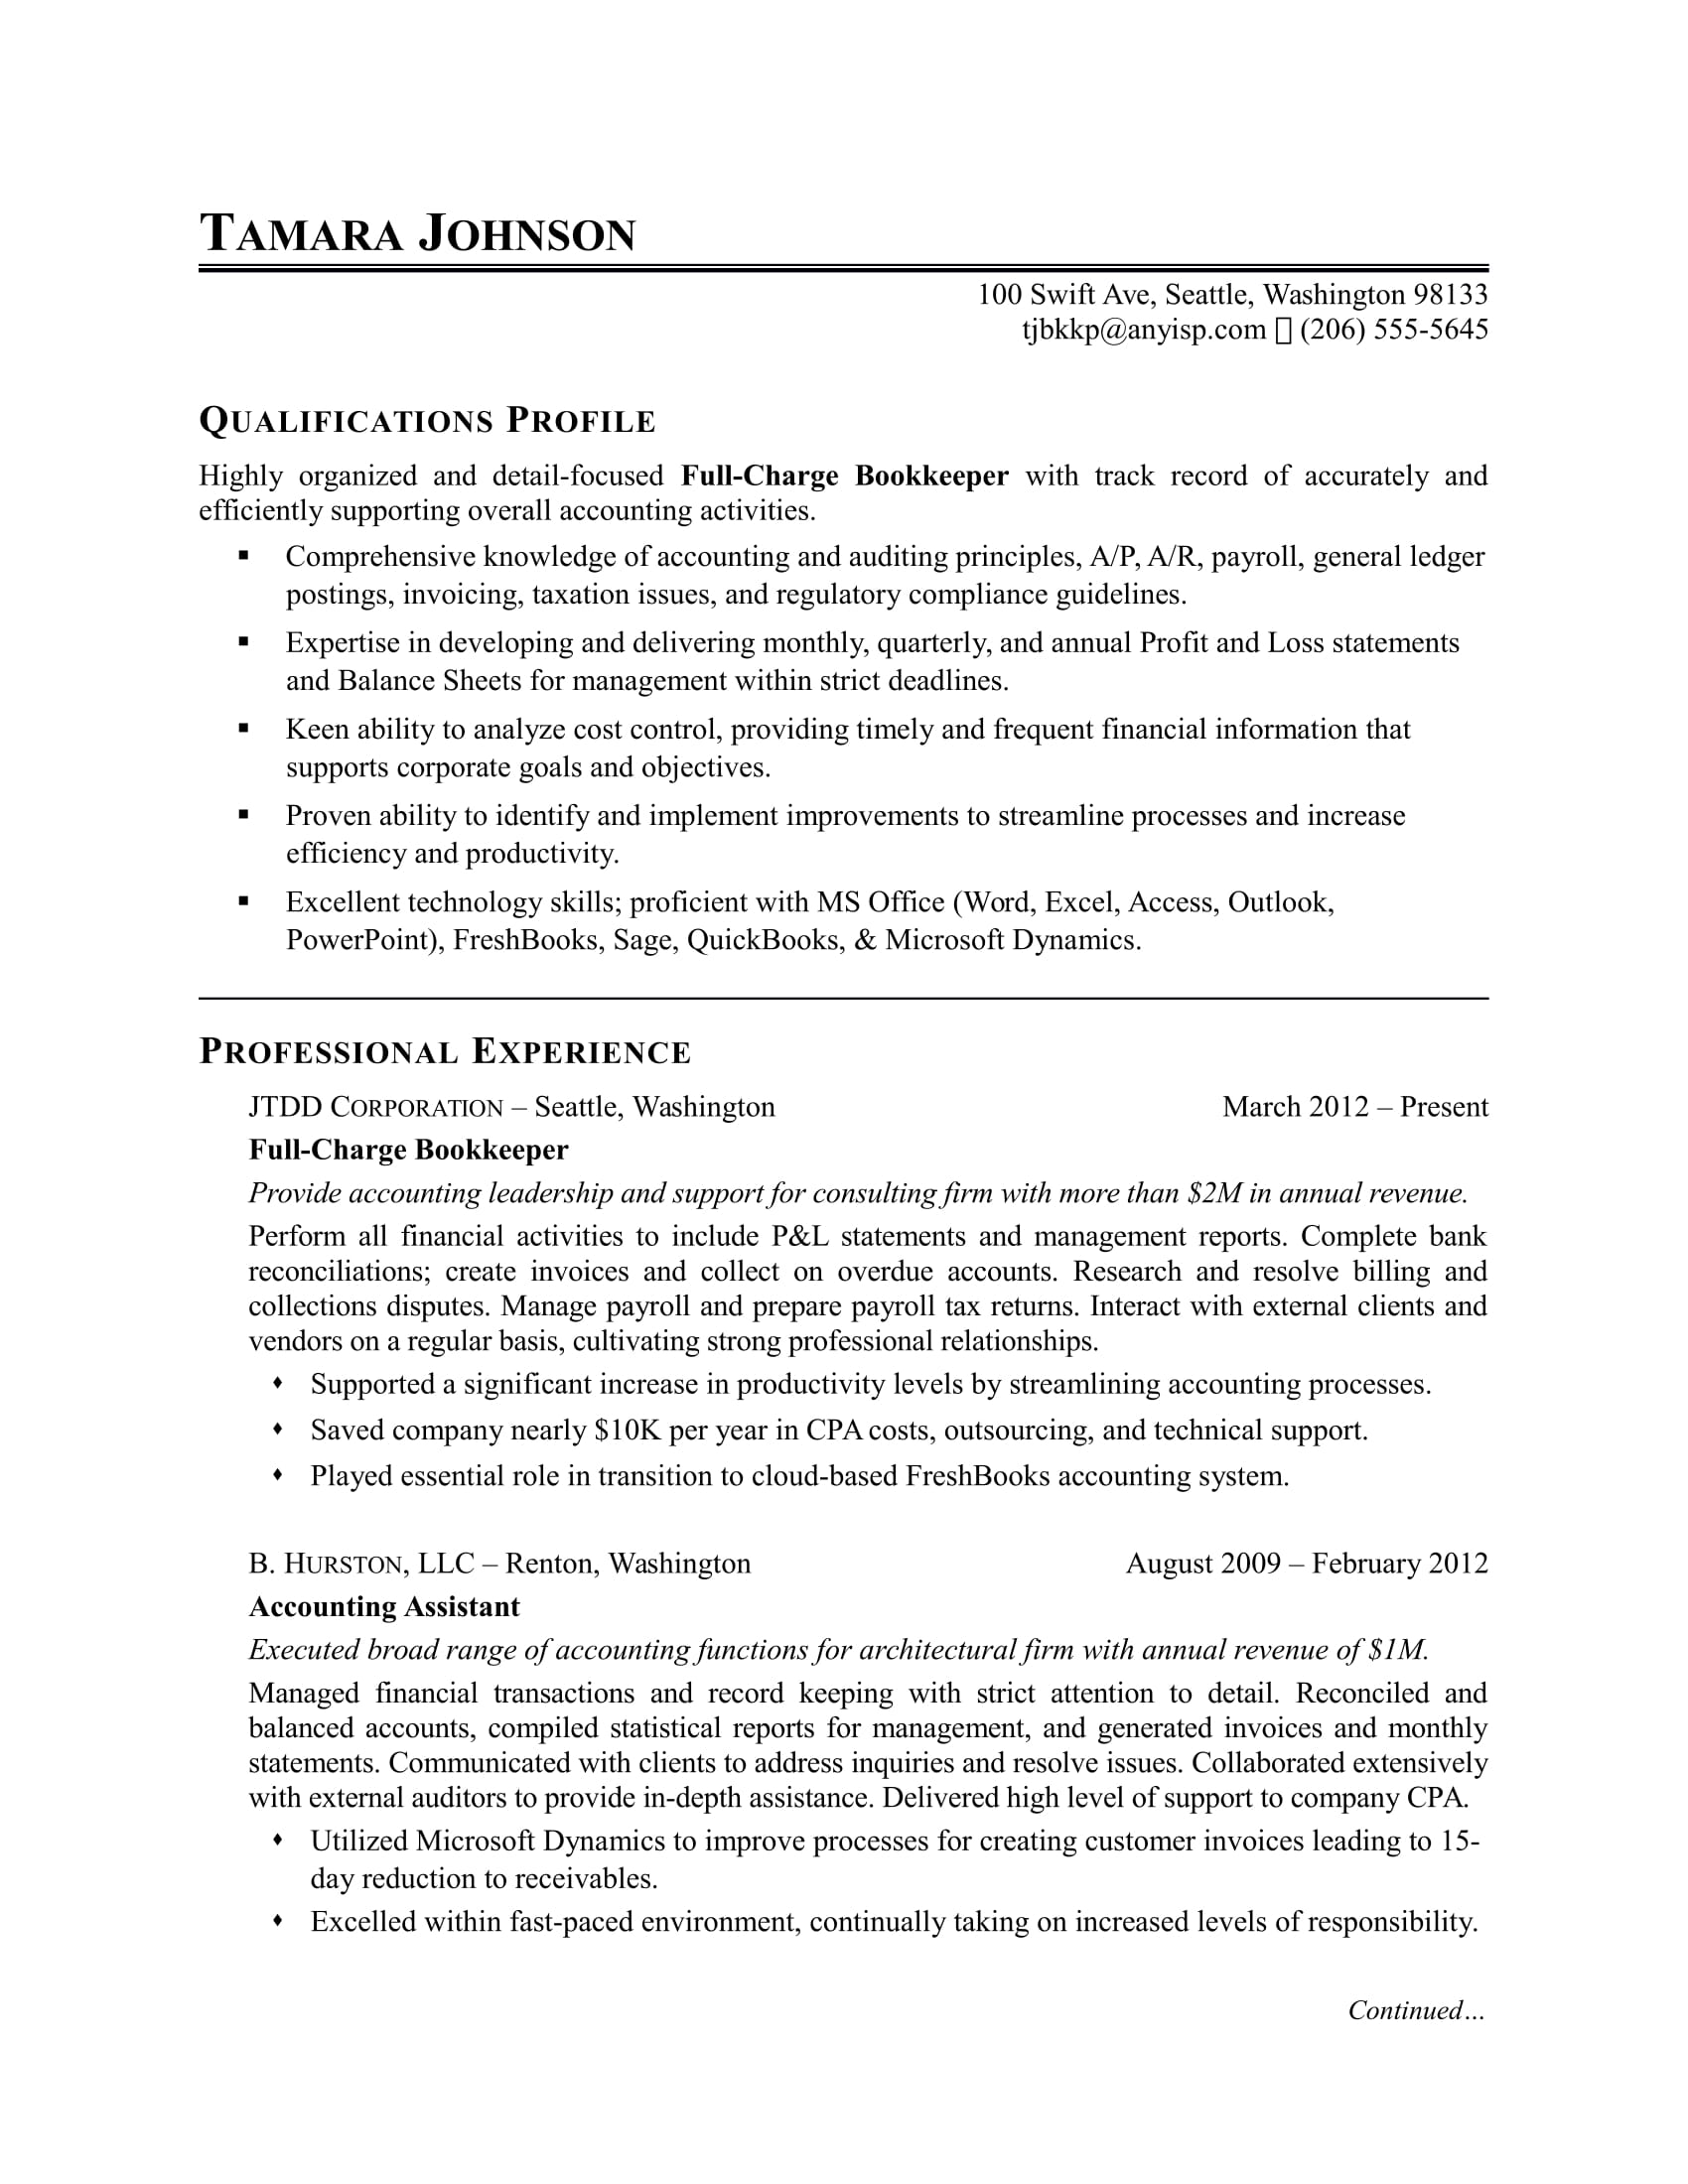 sample resume for a bookkeeper - Example Of Resum